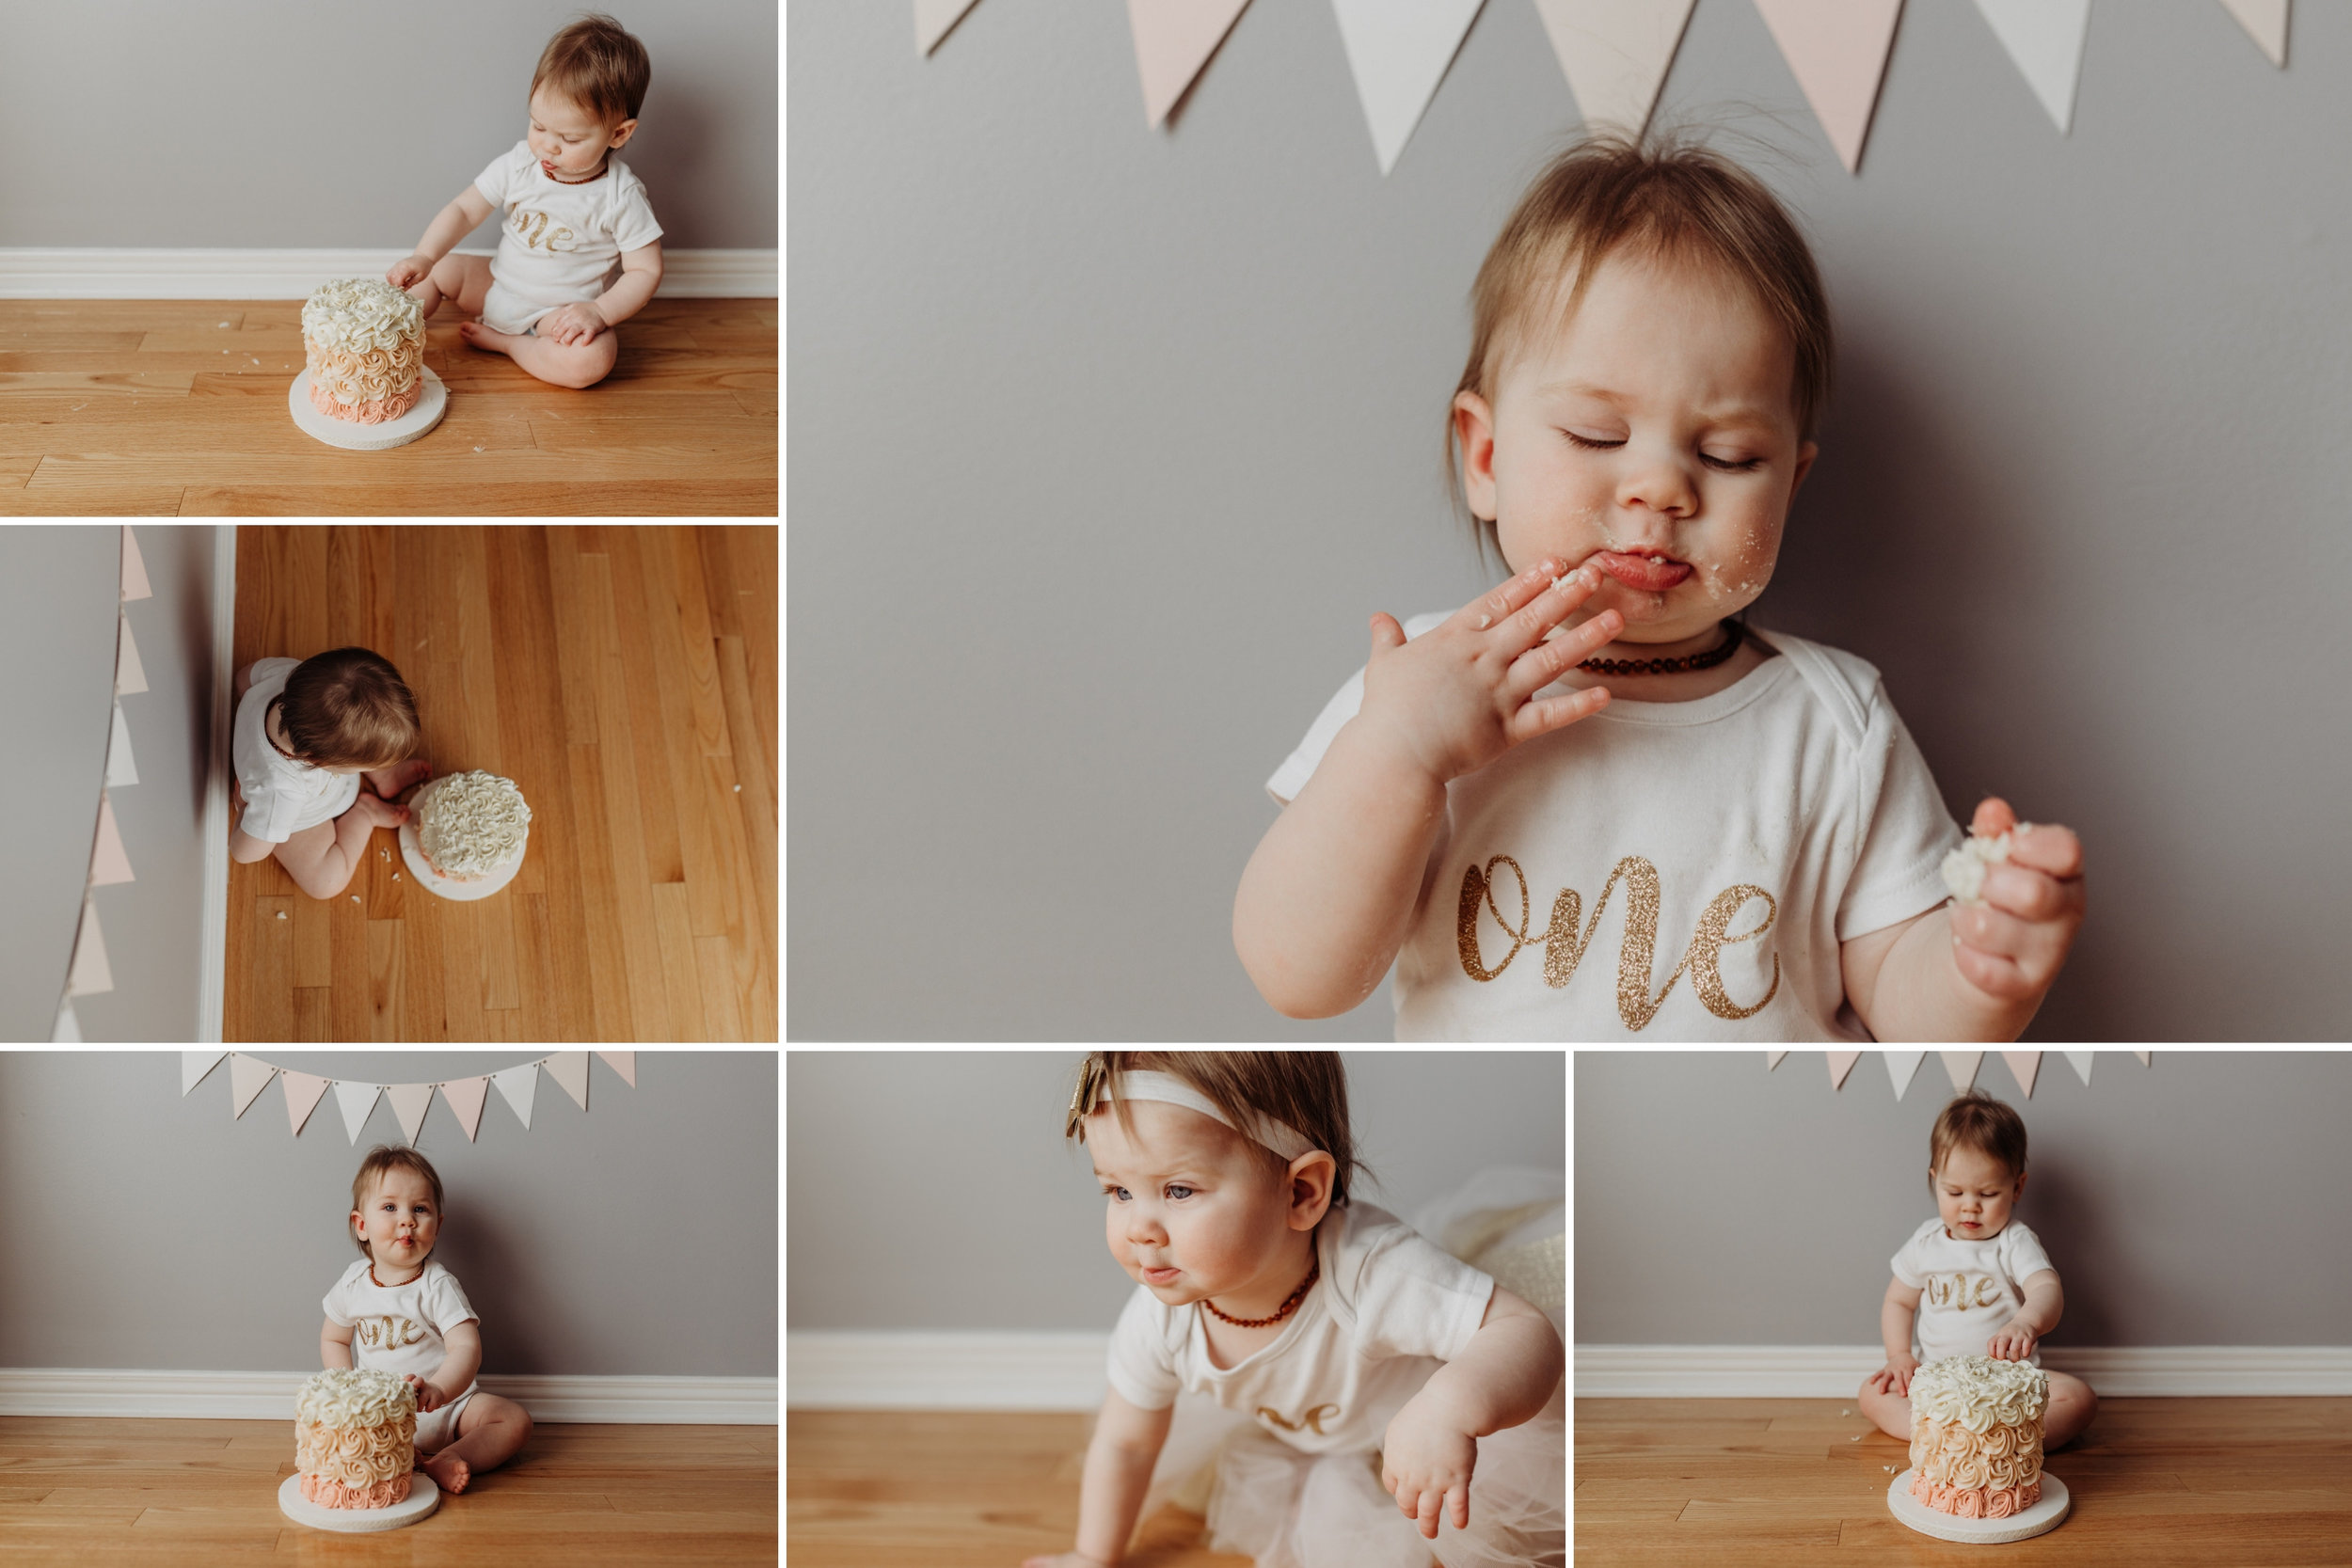 young girl eating birthday cake and smiling at the cake smash photo session in Kanata